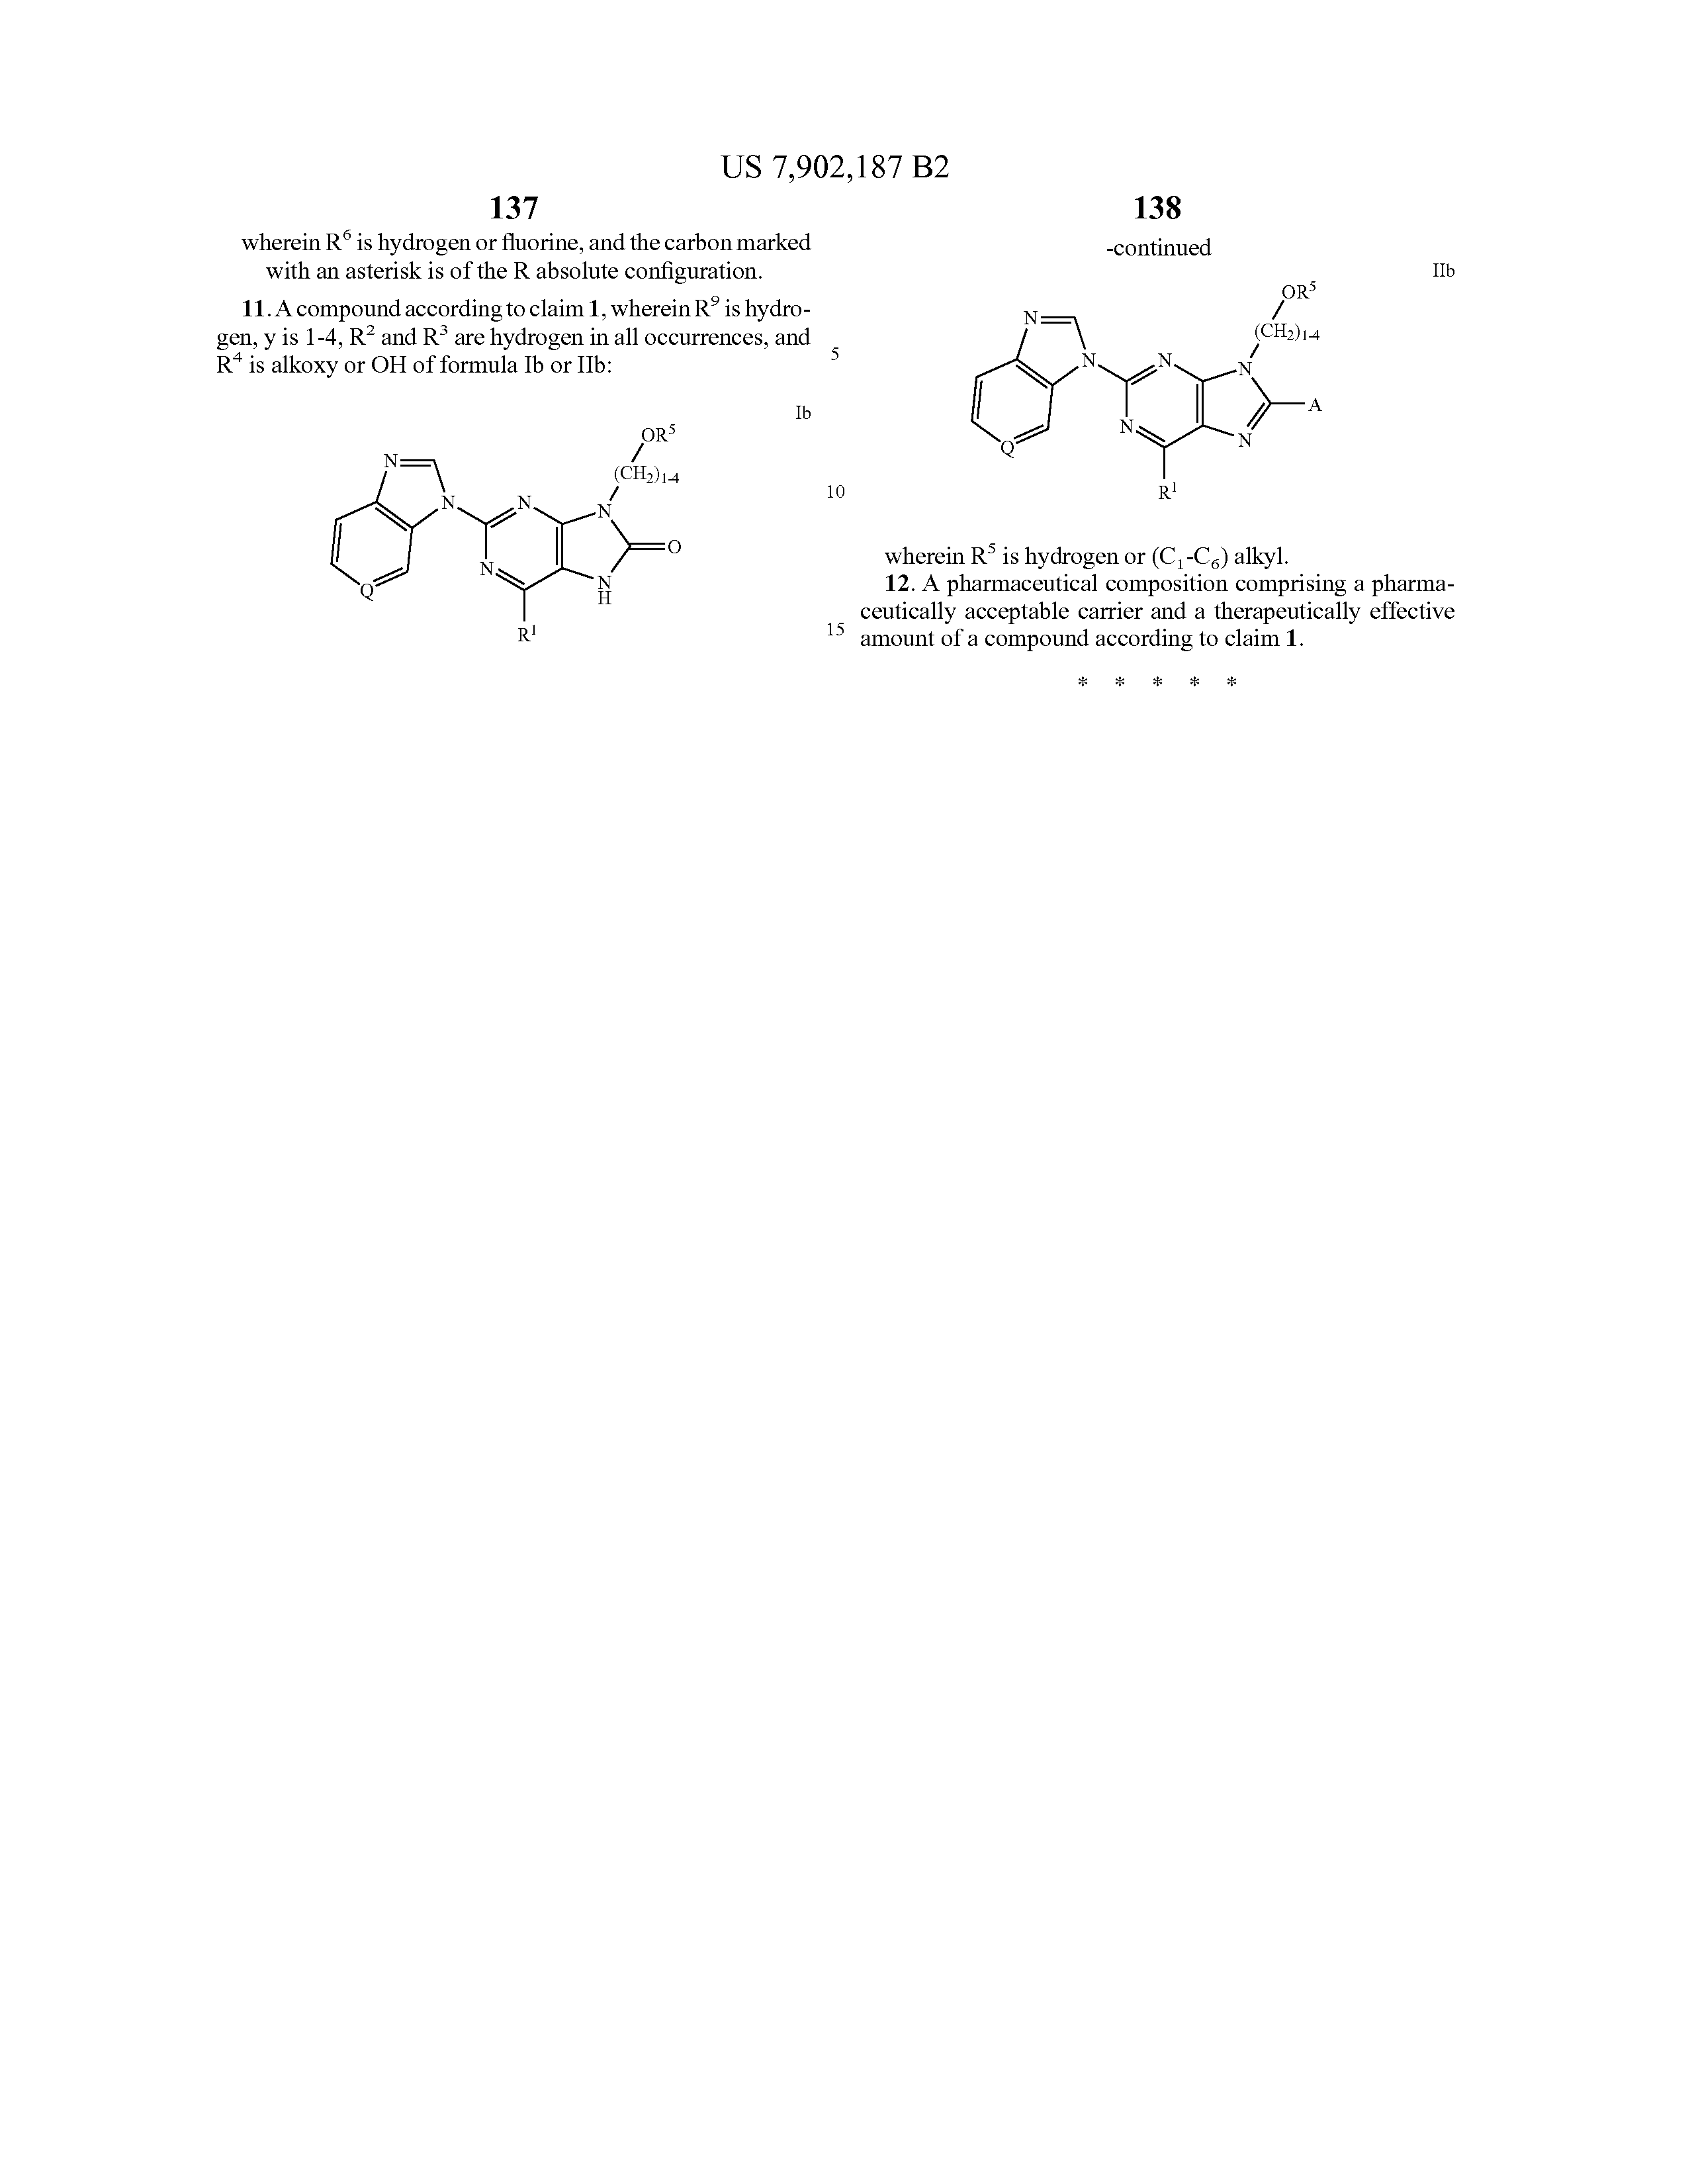 US 7902187 B2 - 6-substituted 2-(benzimidazolyl)purine And